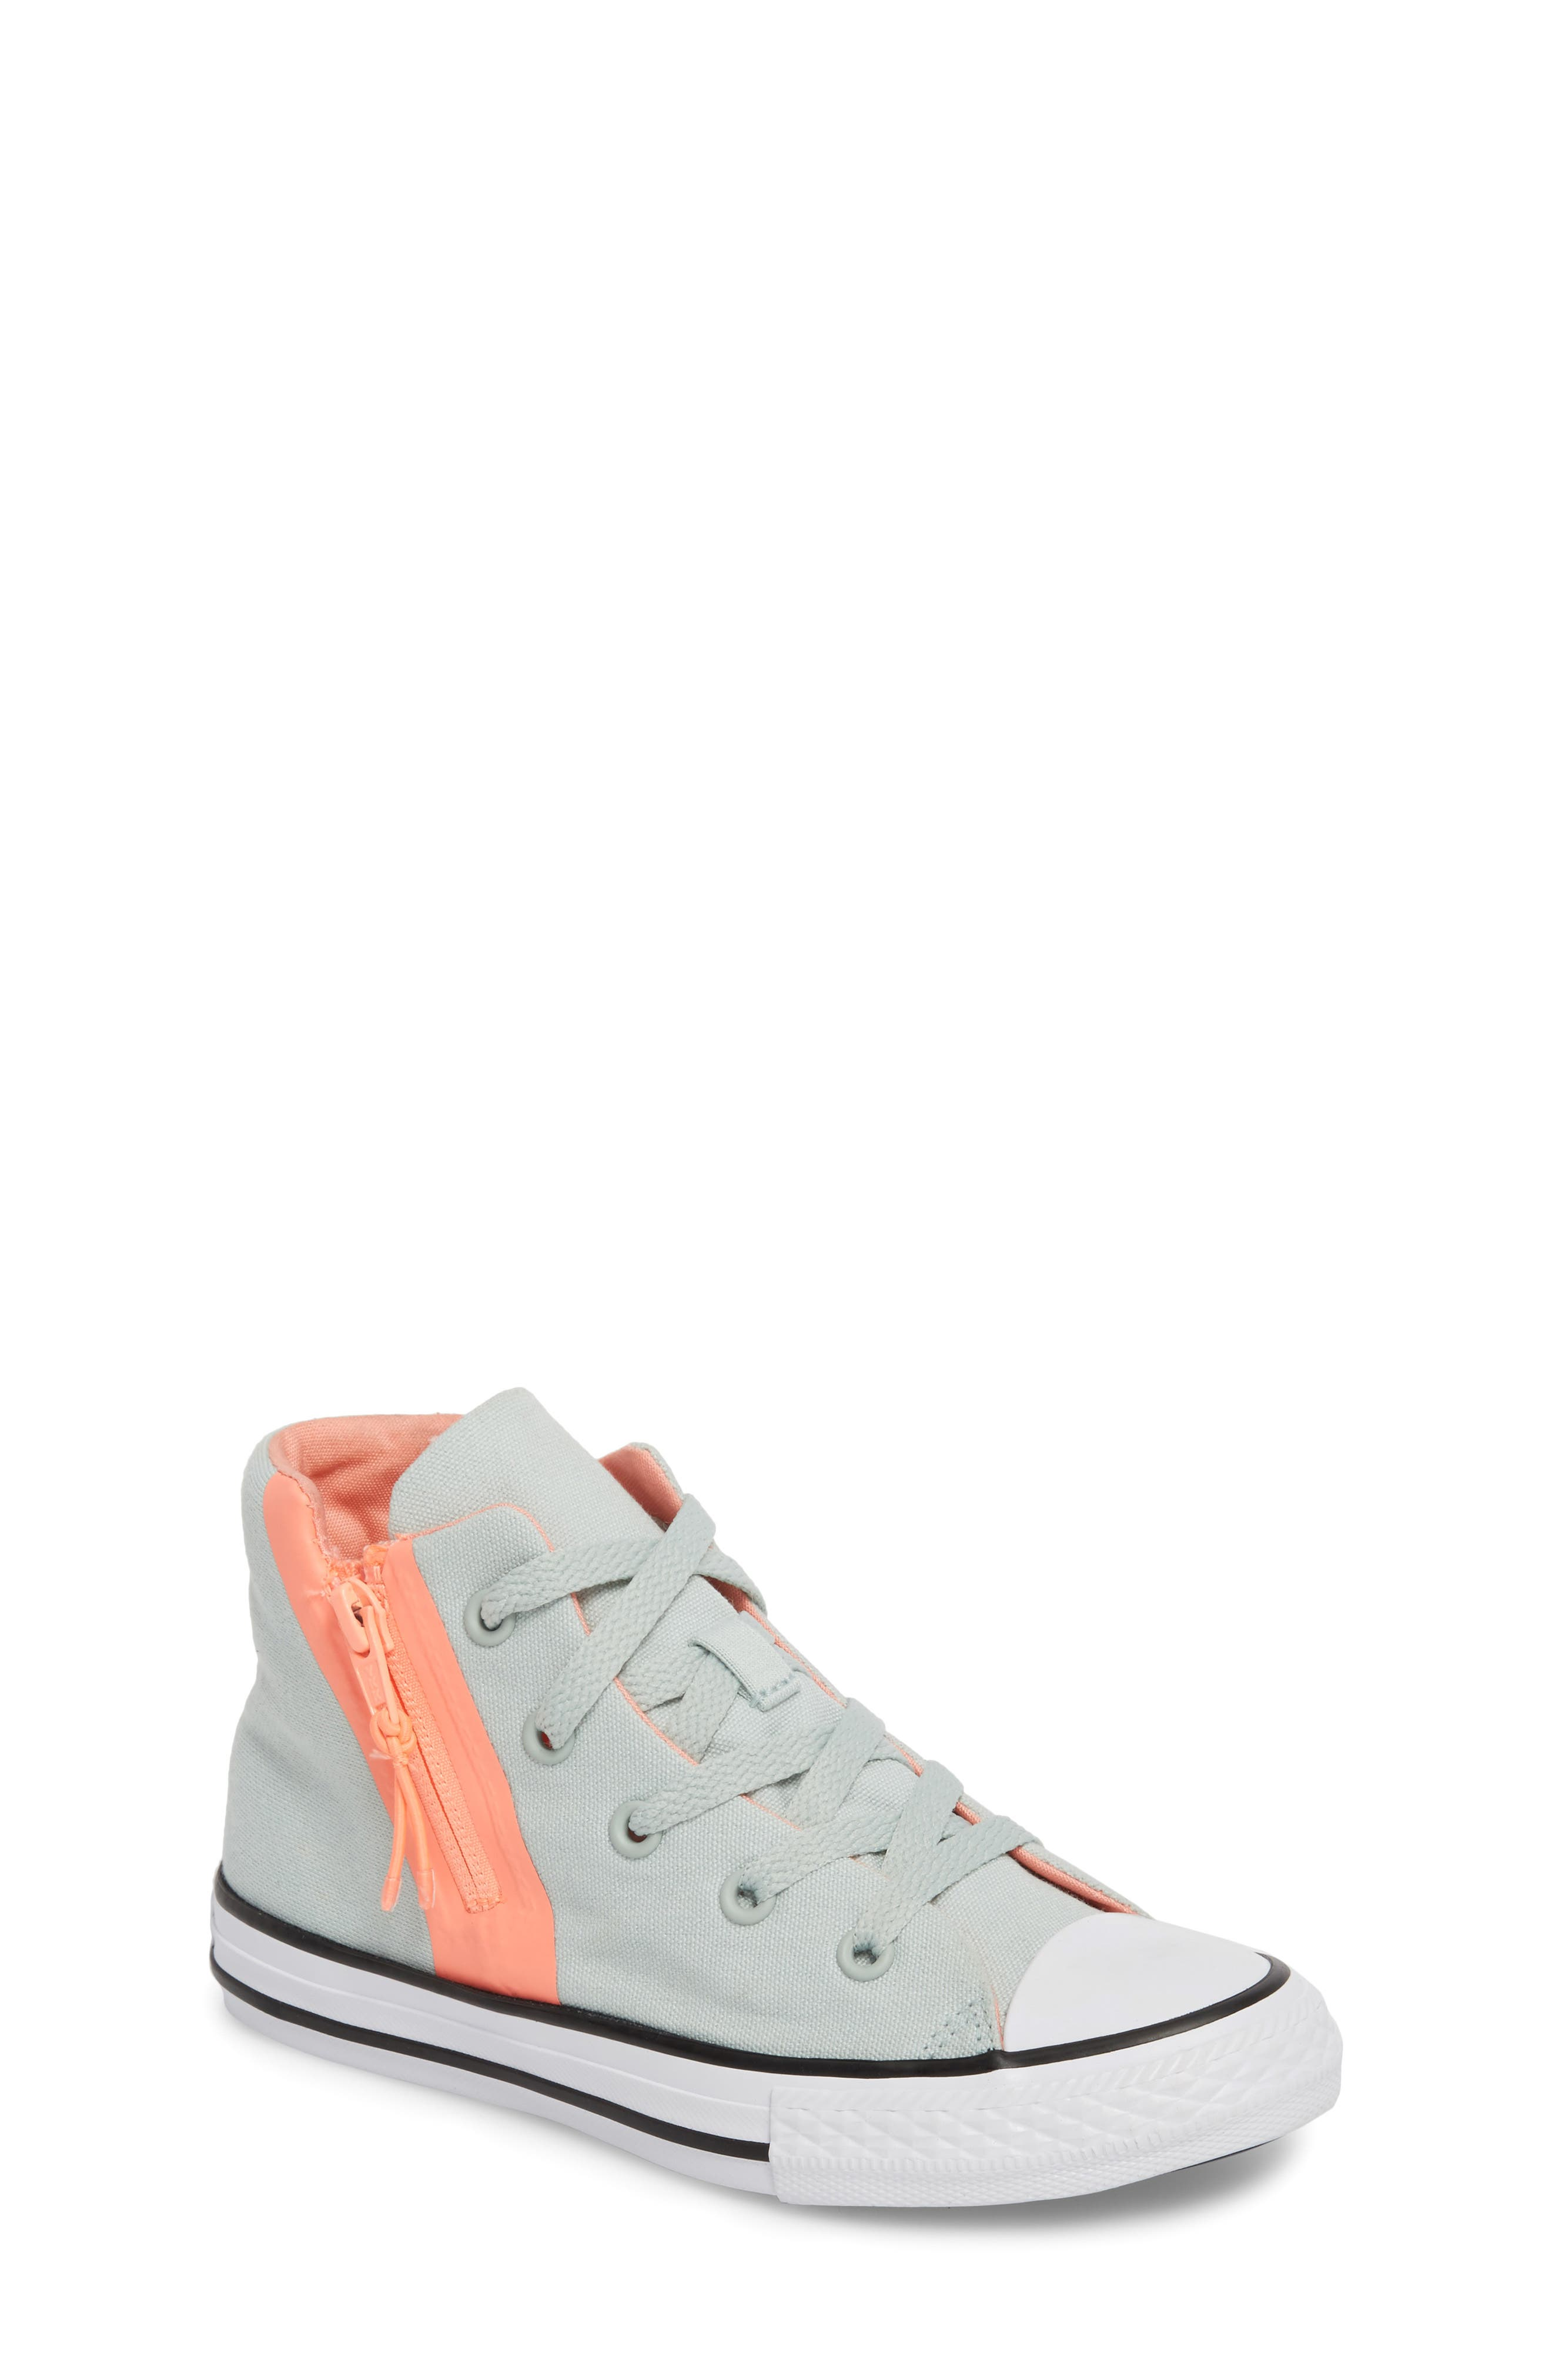 Chuck Taylor<sup>®</sup> All Star<sup>®</sup> Sport Zip High Top Sneaker,                         Main,                         color, 416